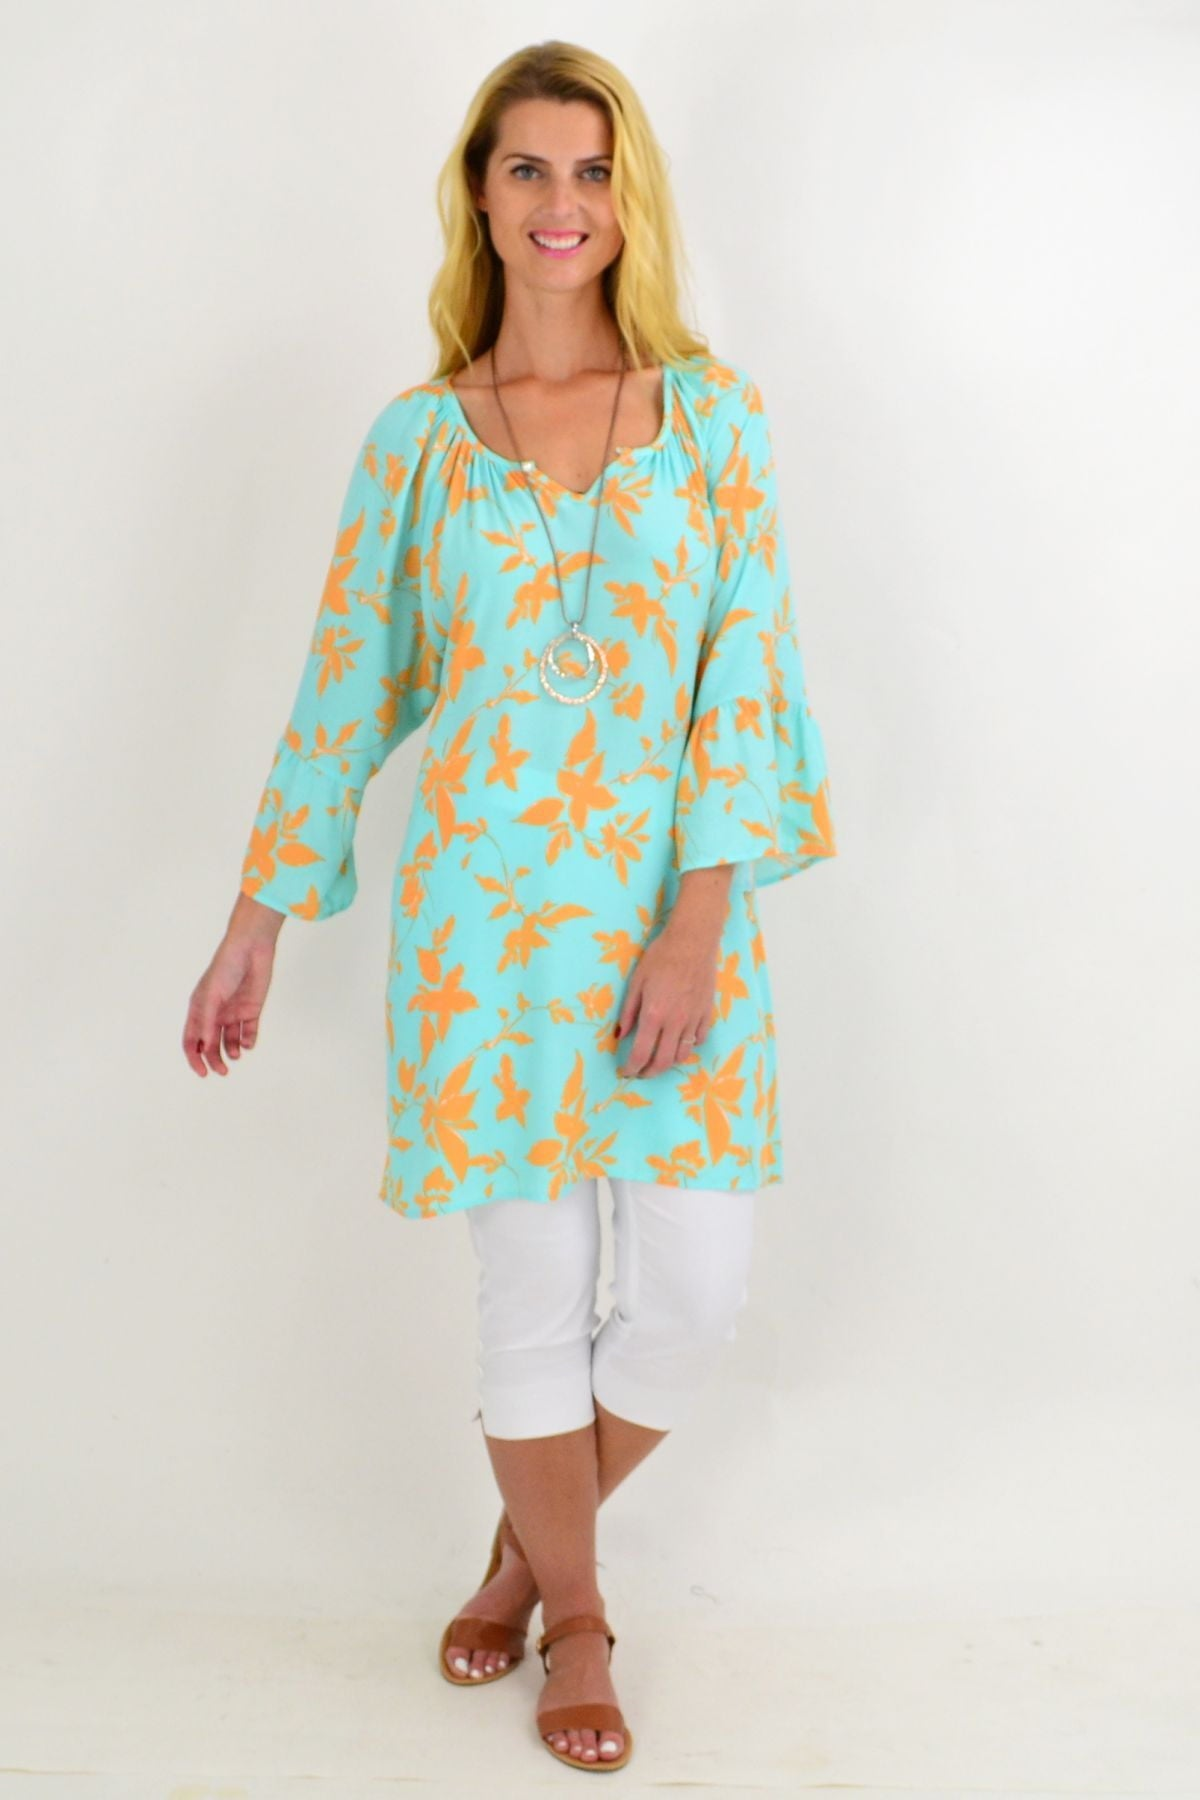 Aqua Orange Leaf Light & Pretty Tunic Top | I Love Tunics | Tunic Tops | Tunic | Tunic Dresses  | womens clothing online